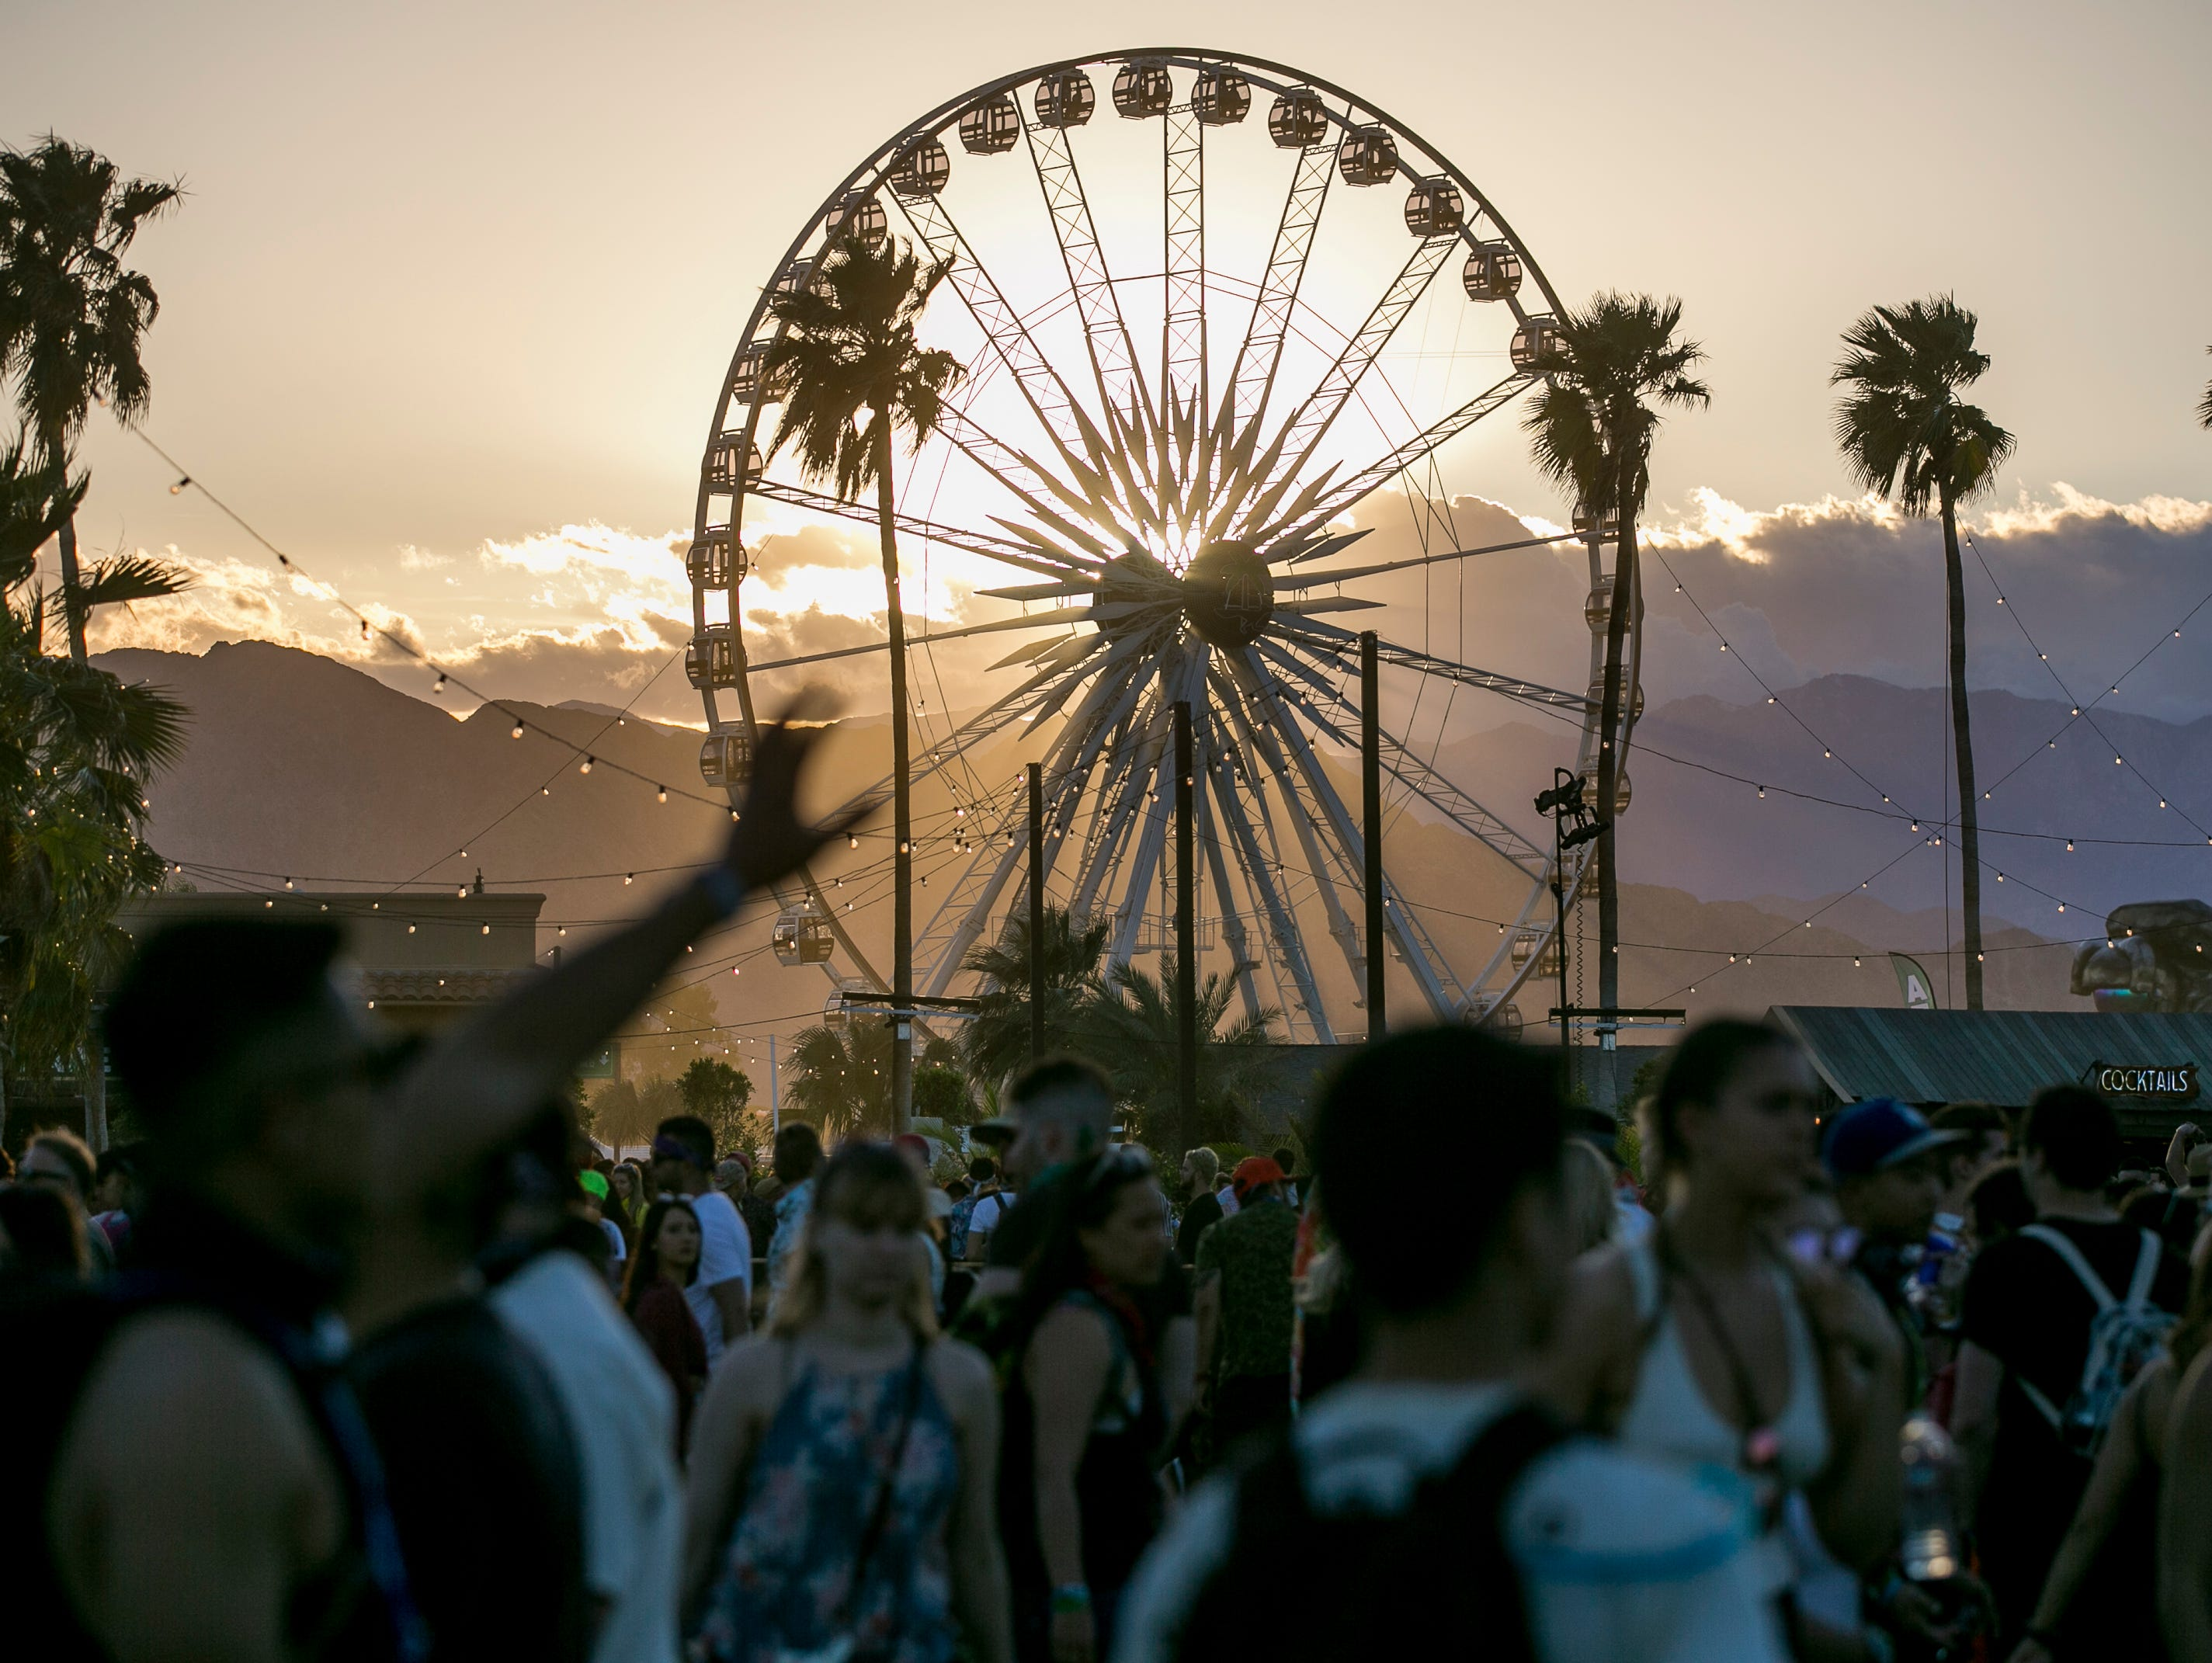 Festival goers walk on the grounds at the Coachella Valley Music and Arts Festival in Indio, Calif. on Fri. April 12, 2019.